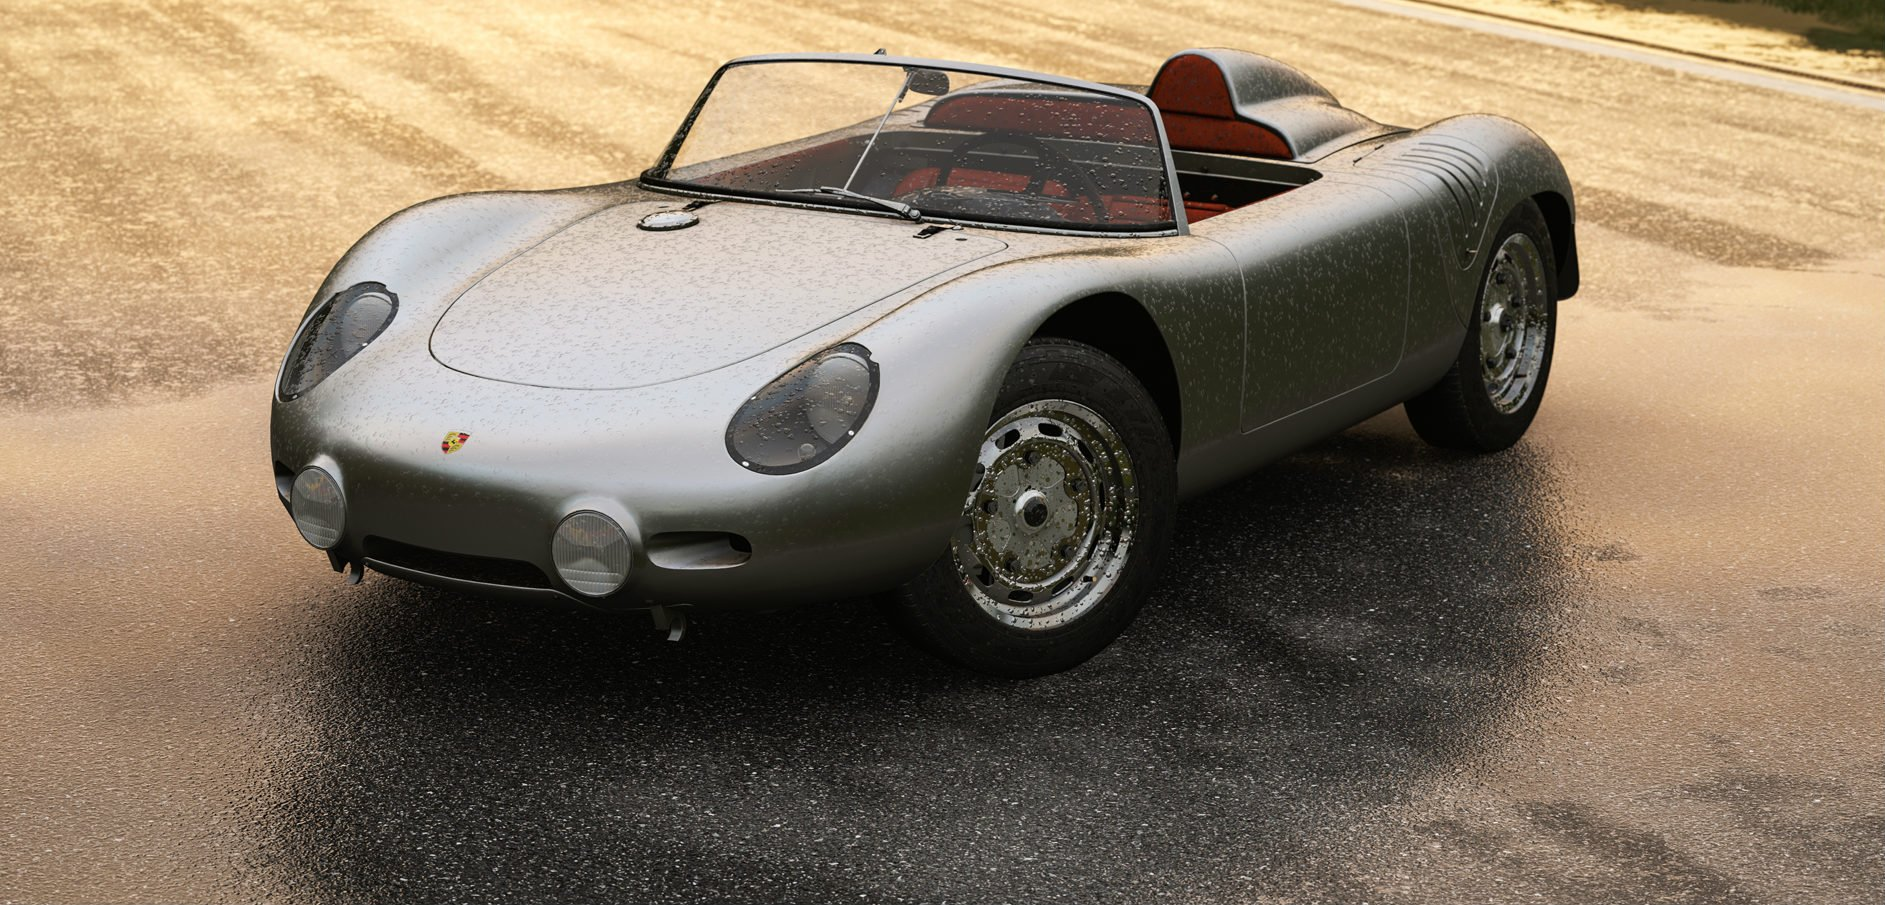 Creative director at Turn 10 promises big things for Forza and Porsche partnership screenshot